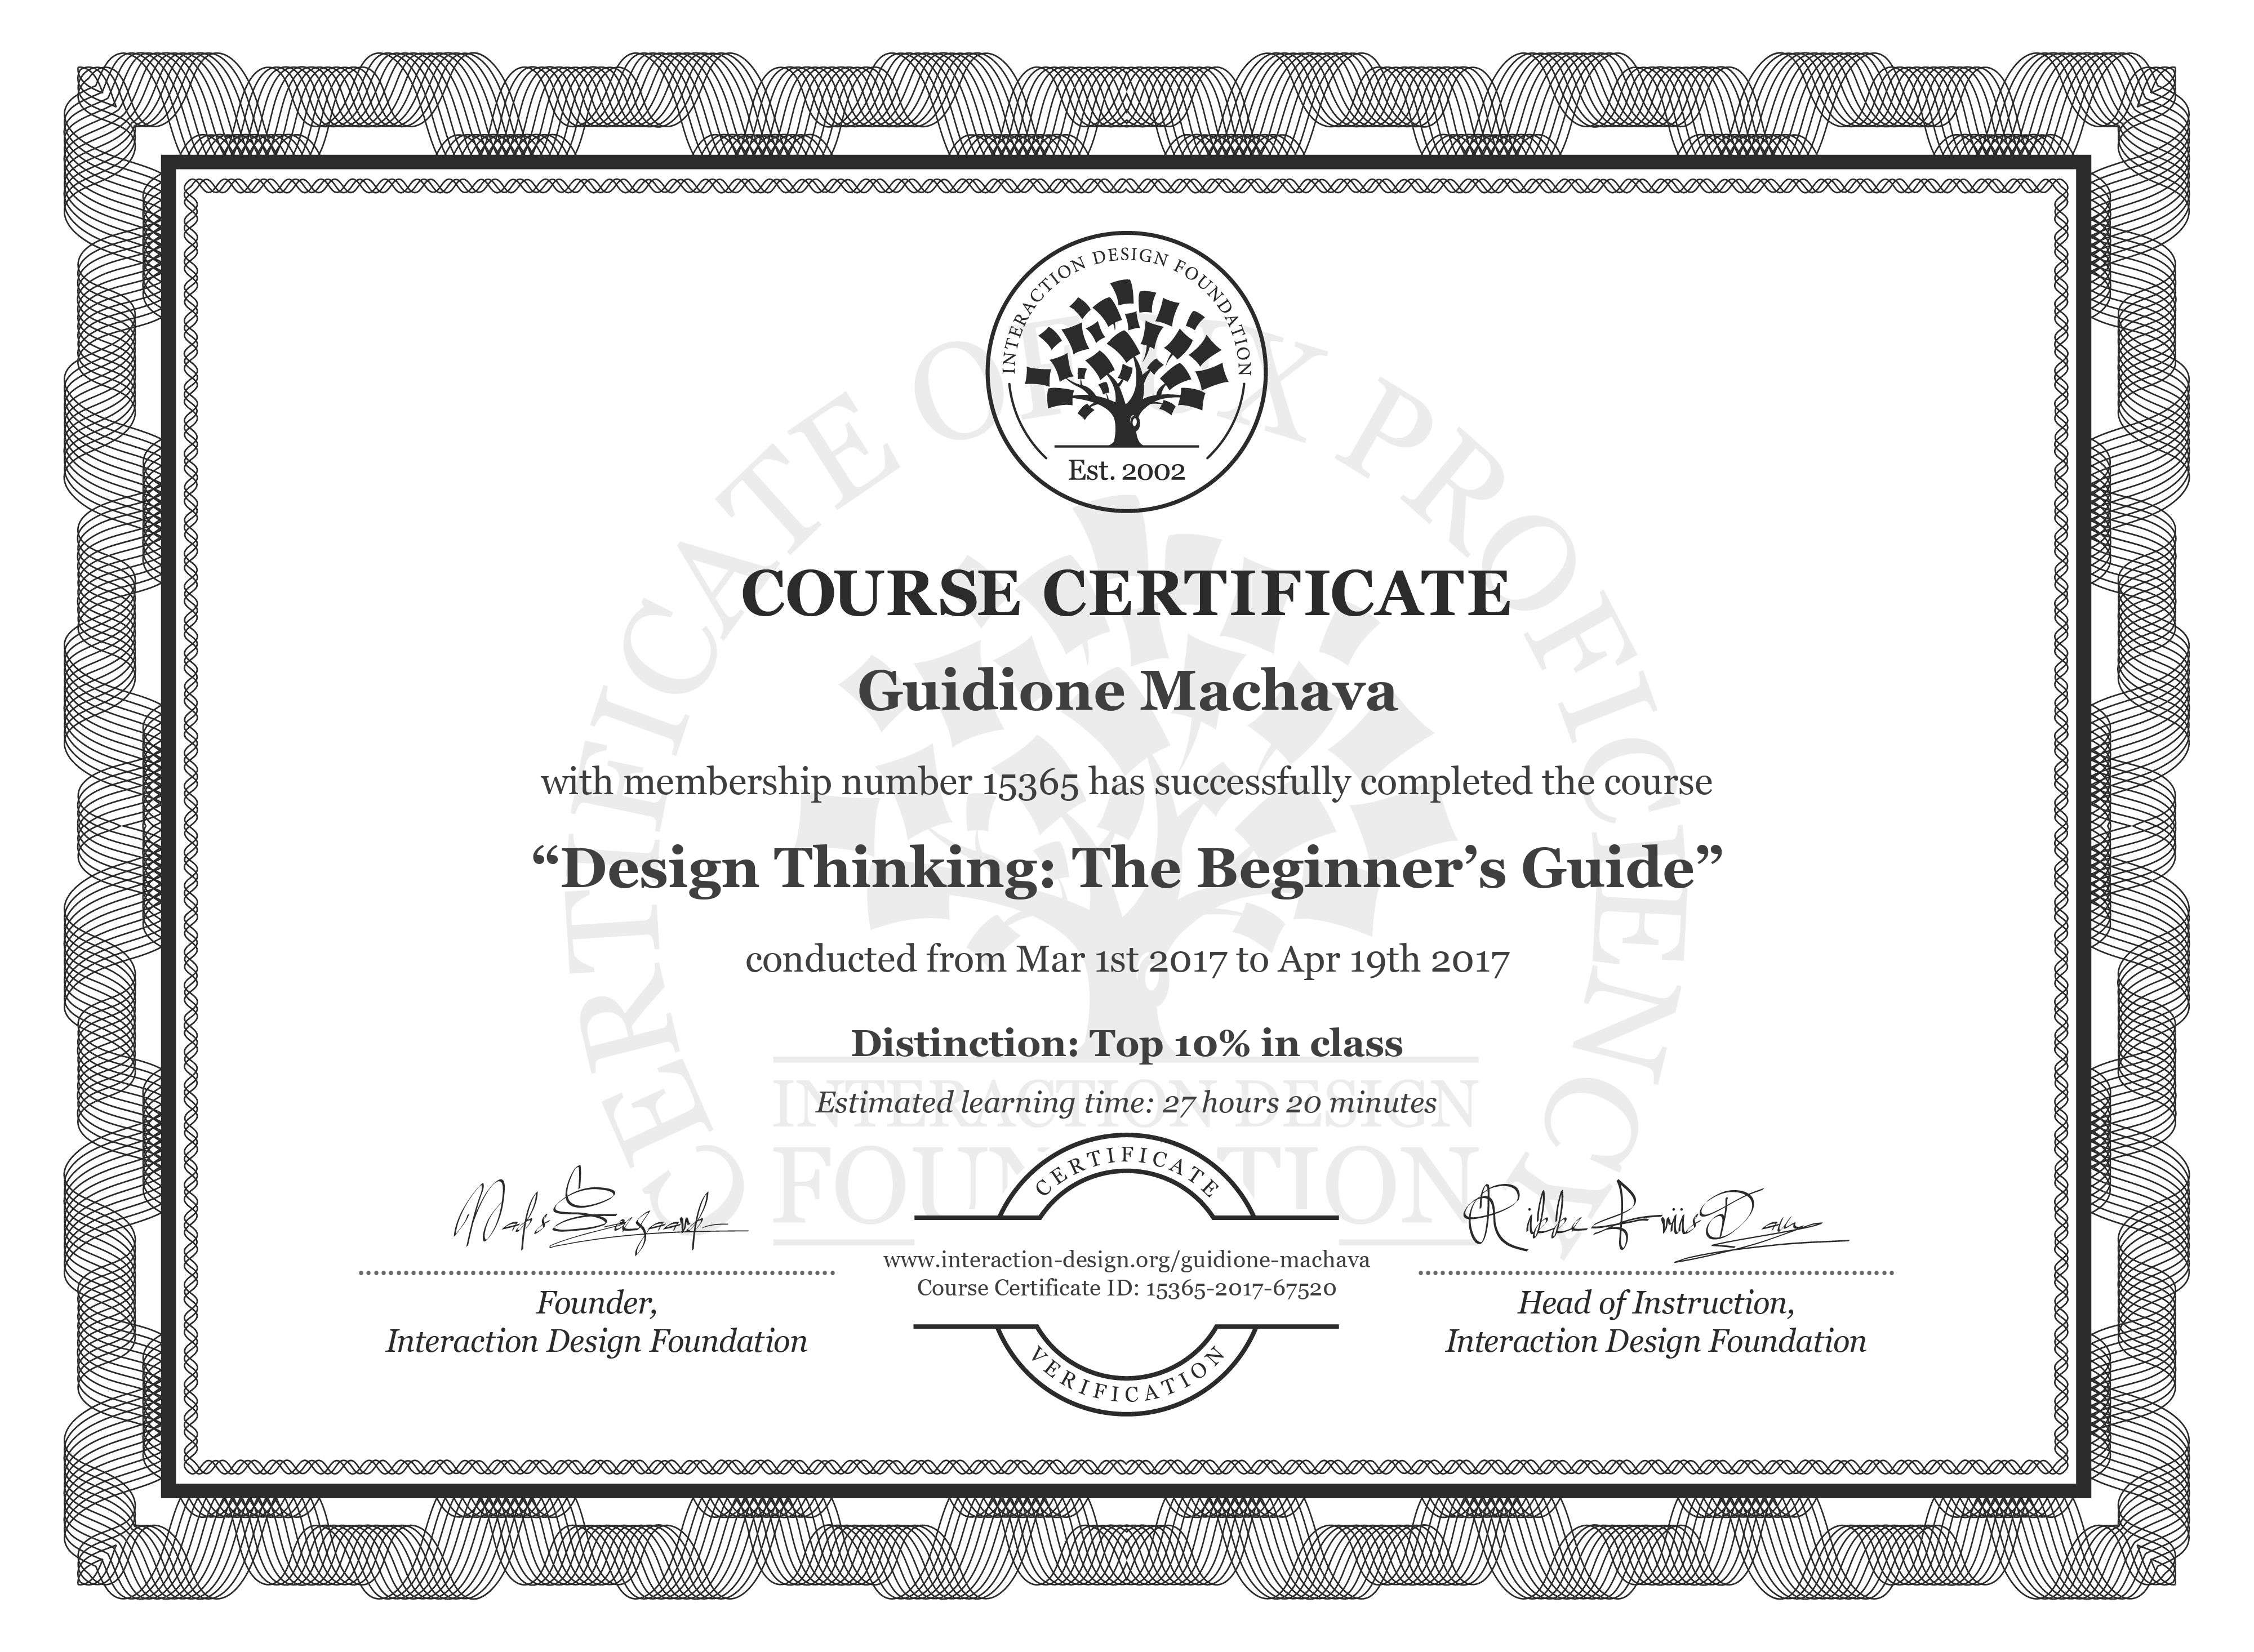 Guidione Machava: Course Certificate - Design Thinking: The Beginner's Guide